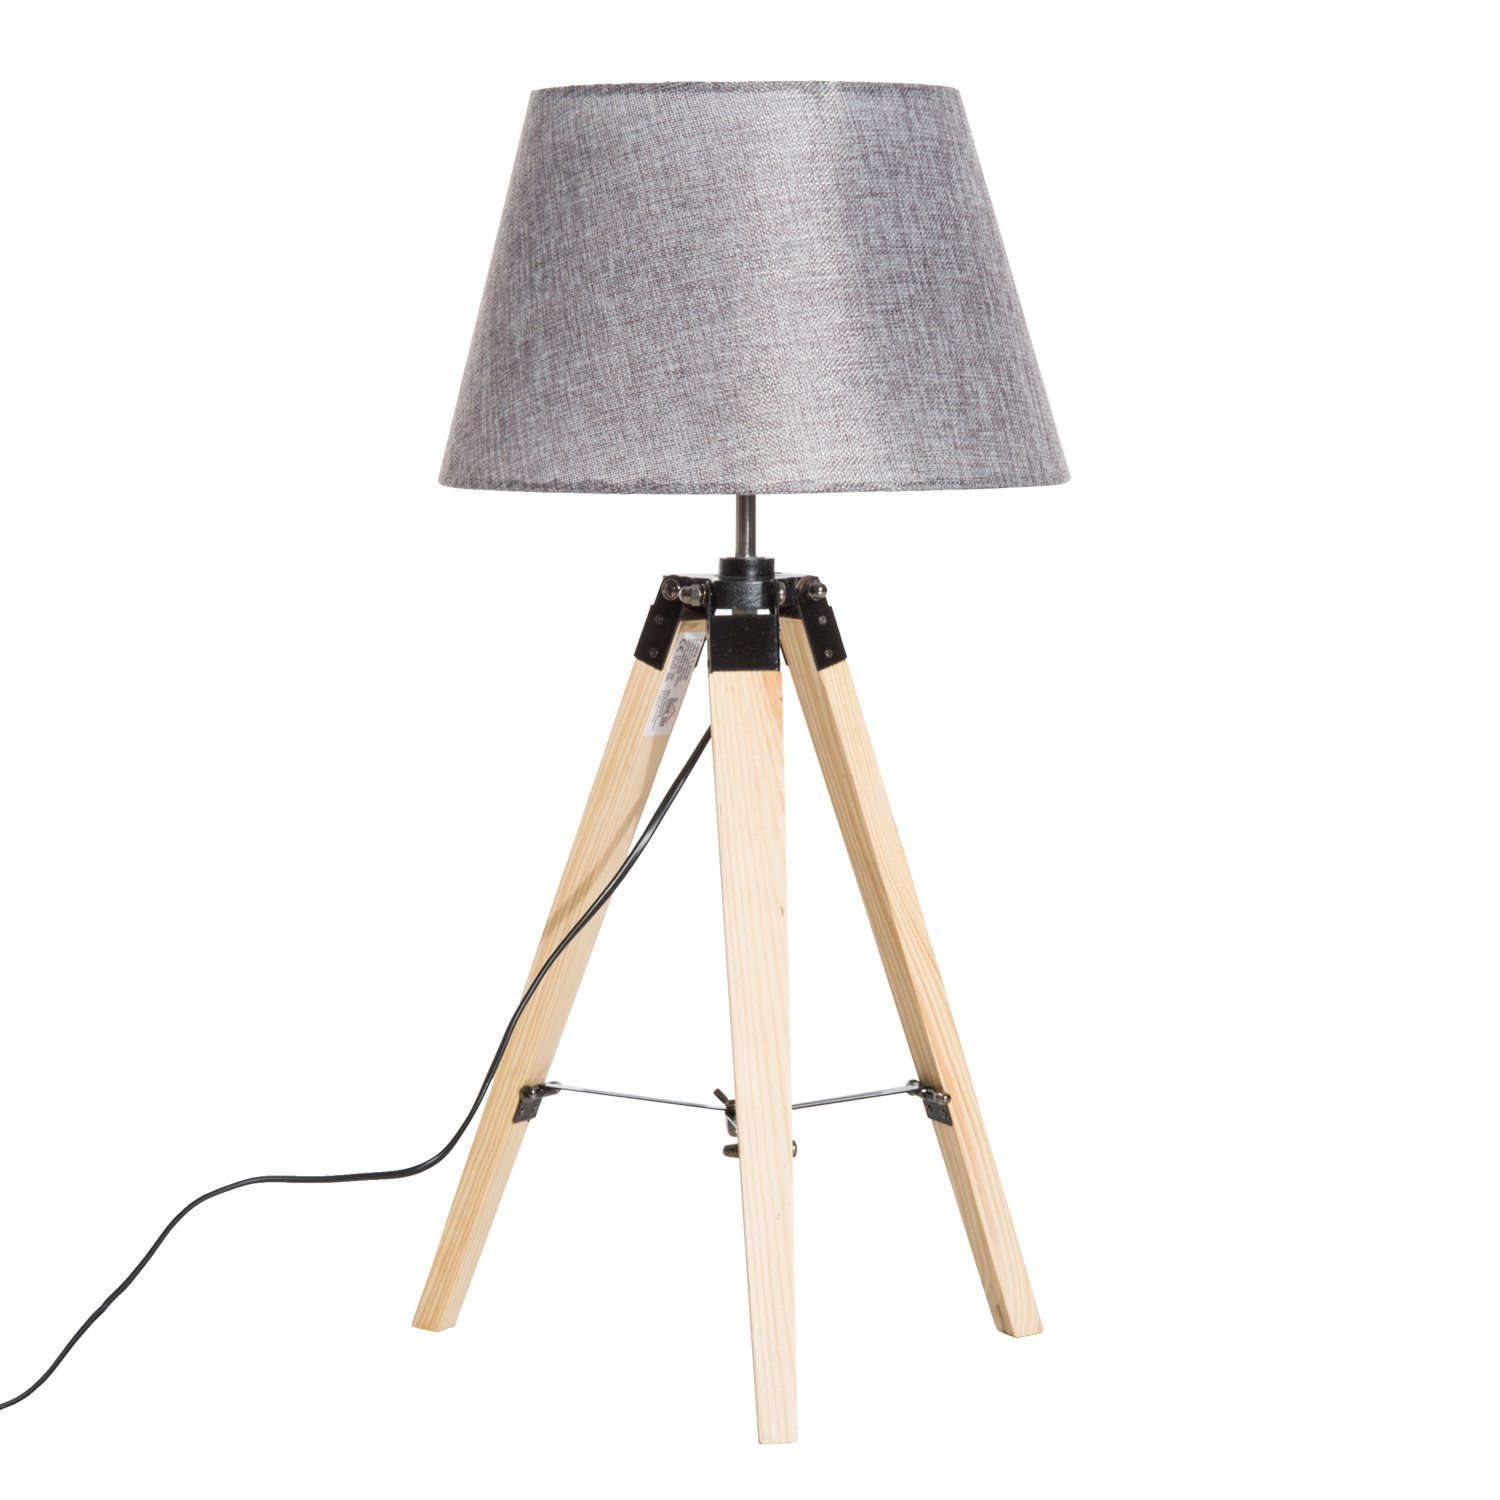 "Hom Com 27"" Linen Fabric Table Lamp With Wooden Tripod Stand   Grey by Homcom"